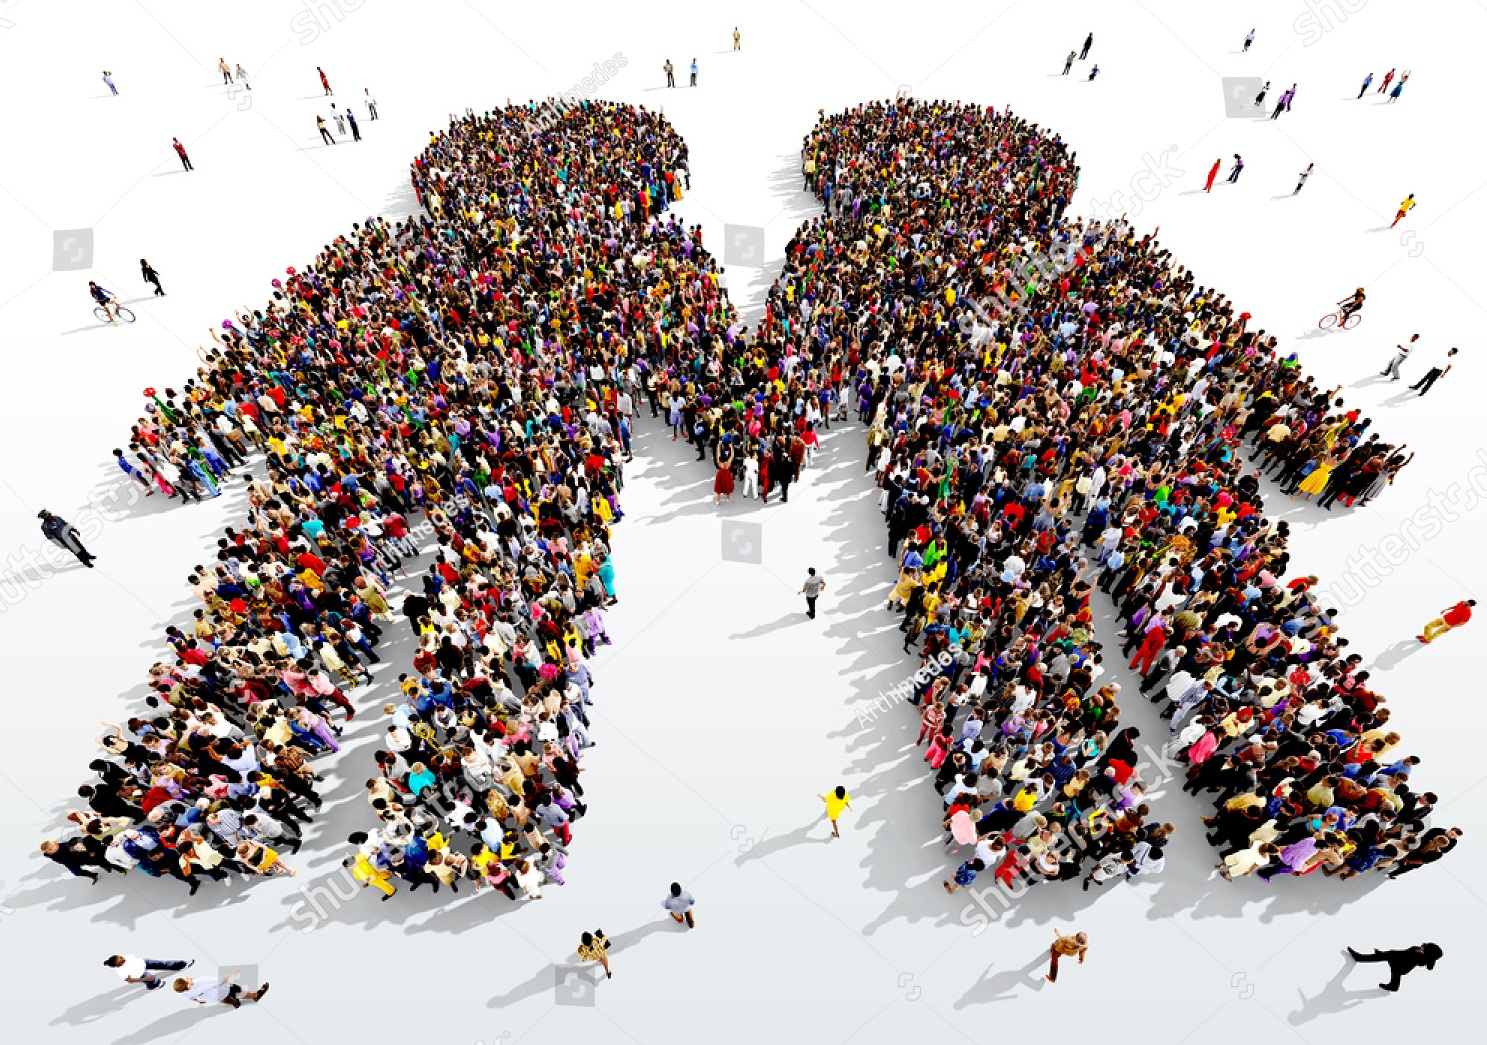 stock-photo-large-and-diverse-group-of-people-seen-from-above-gathered-together-in-the-shape-of-two-people-457376863